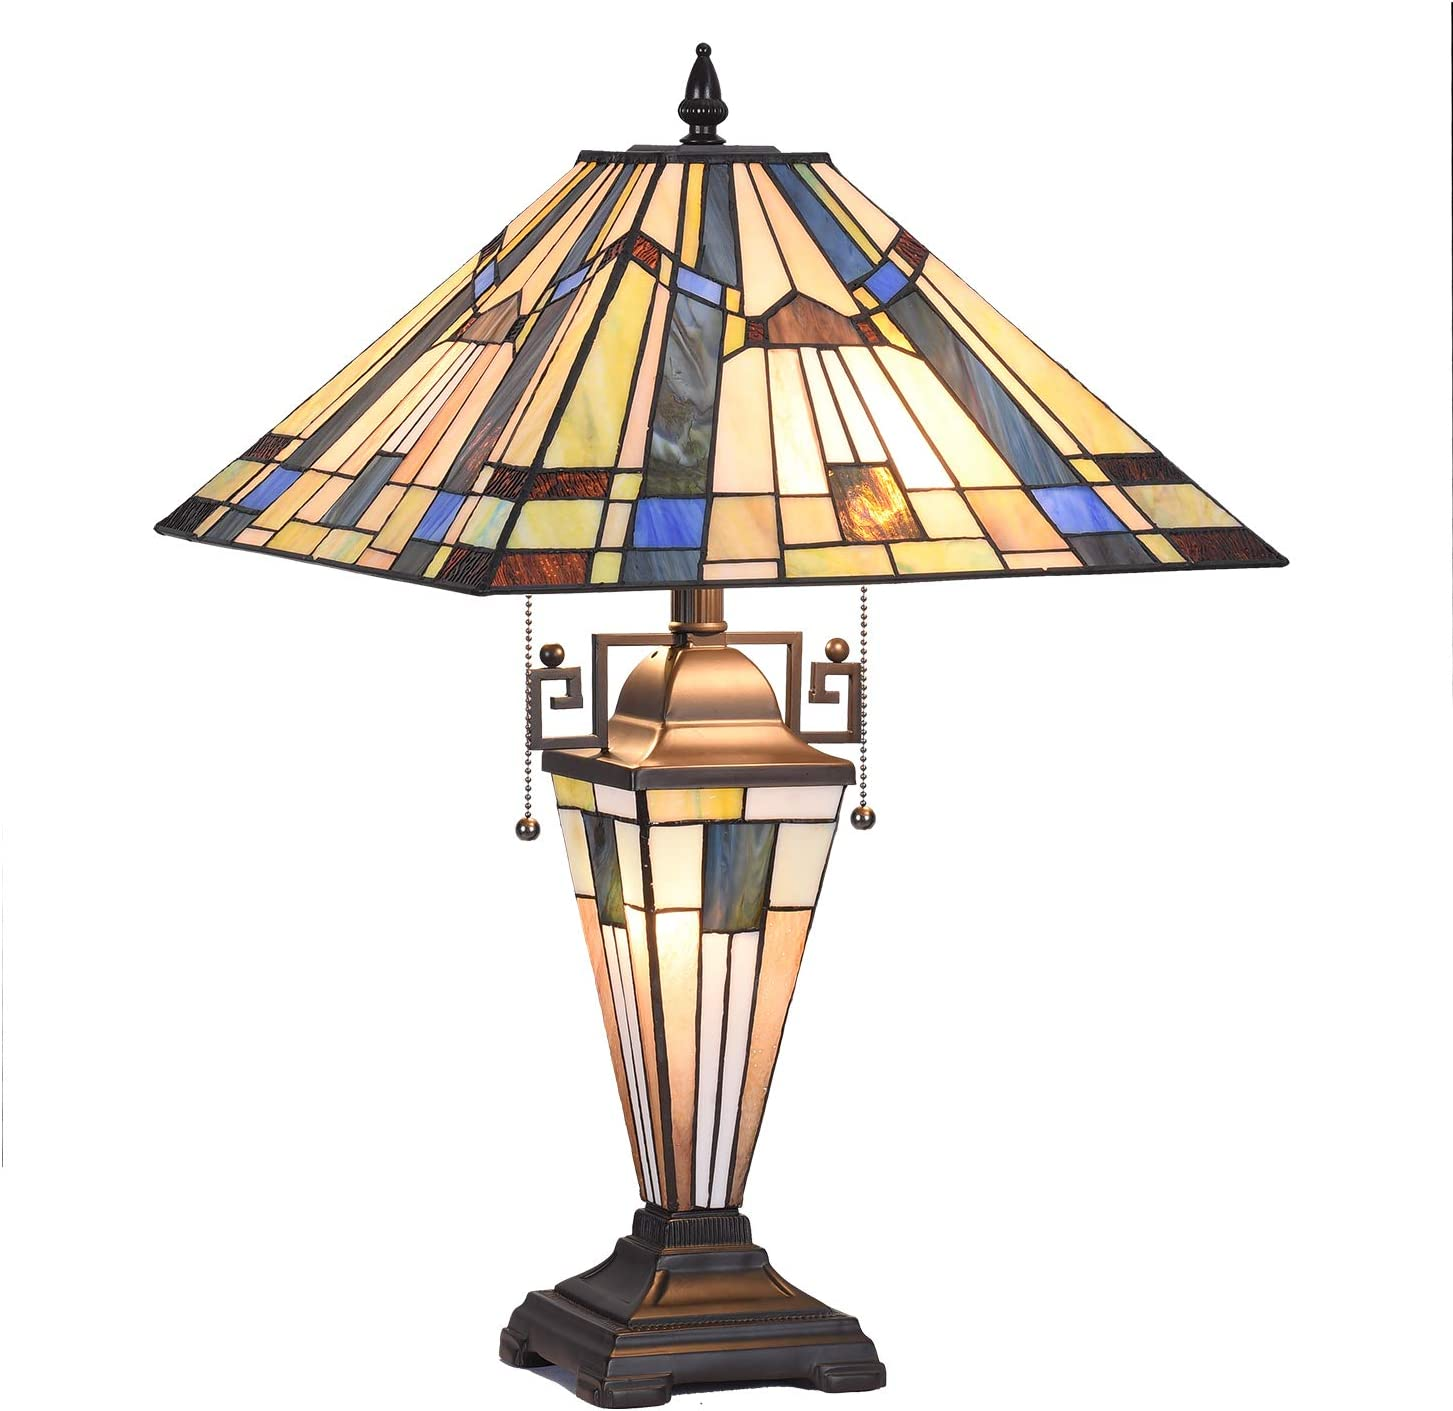 """Tiffany Glass Lamp, Capulina Handcrafted 15.9"""" Mission Stained Glass Lamps Shades, Timeless Art Stunning Tiffany Desk Lamp, Enhance Home, Office, Desk, Entry, Living Room - Gothic Glass Styles"""